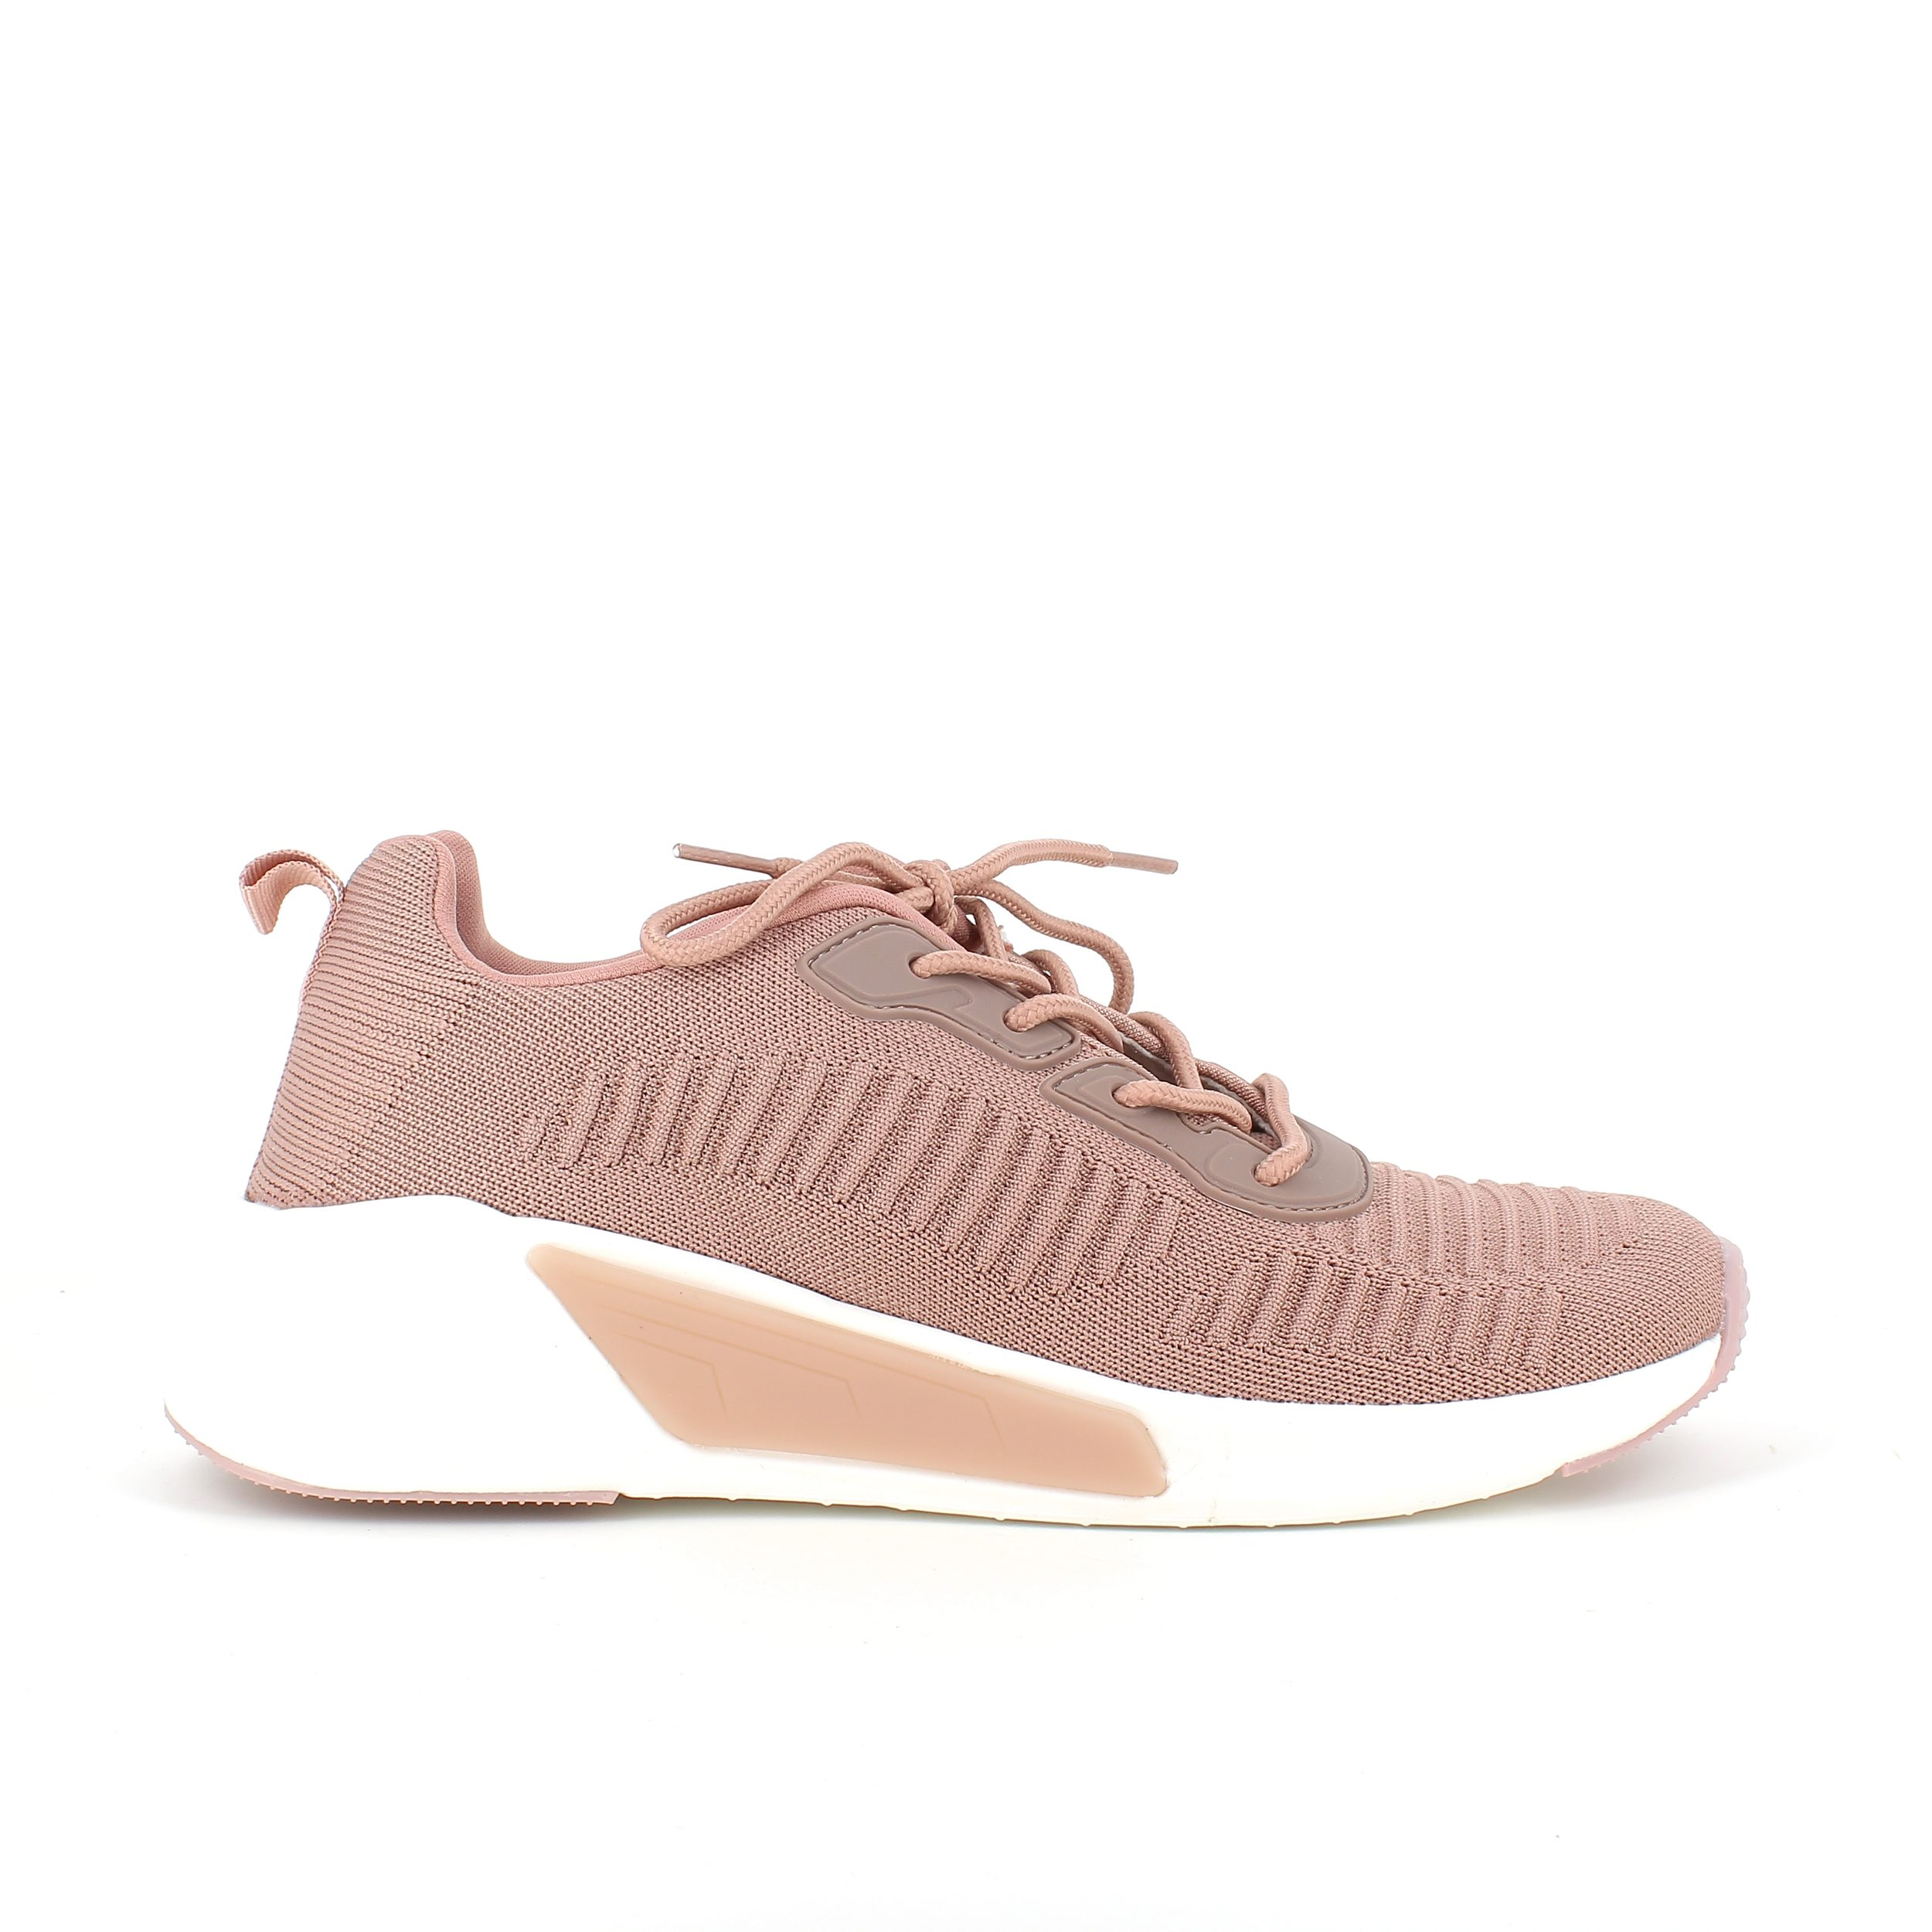 Letvægts sneakers i rosa - 36